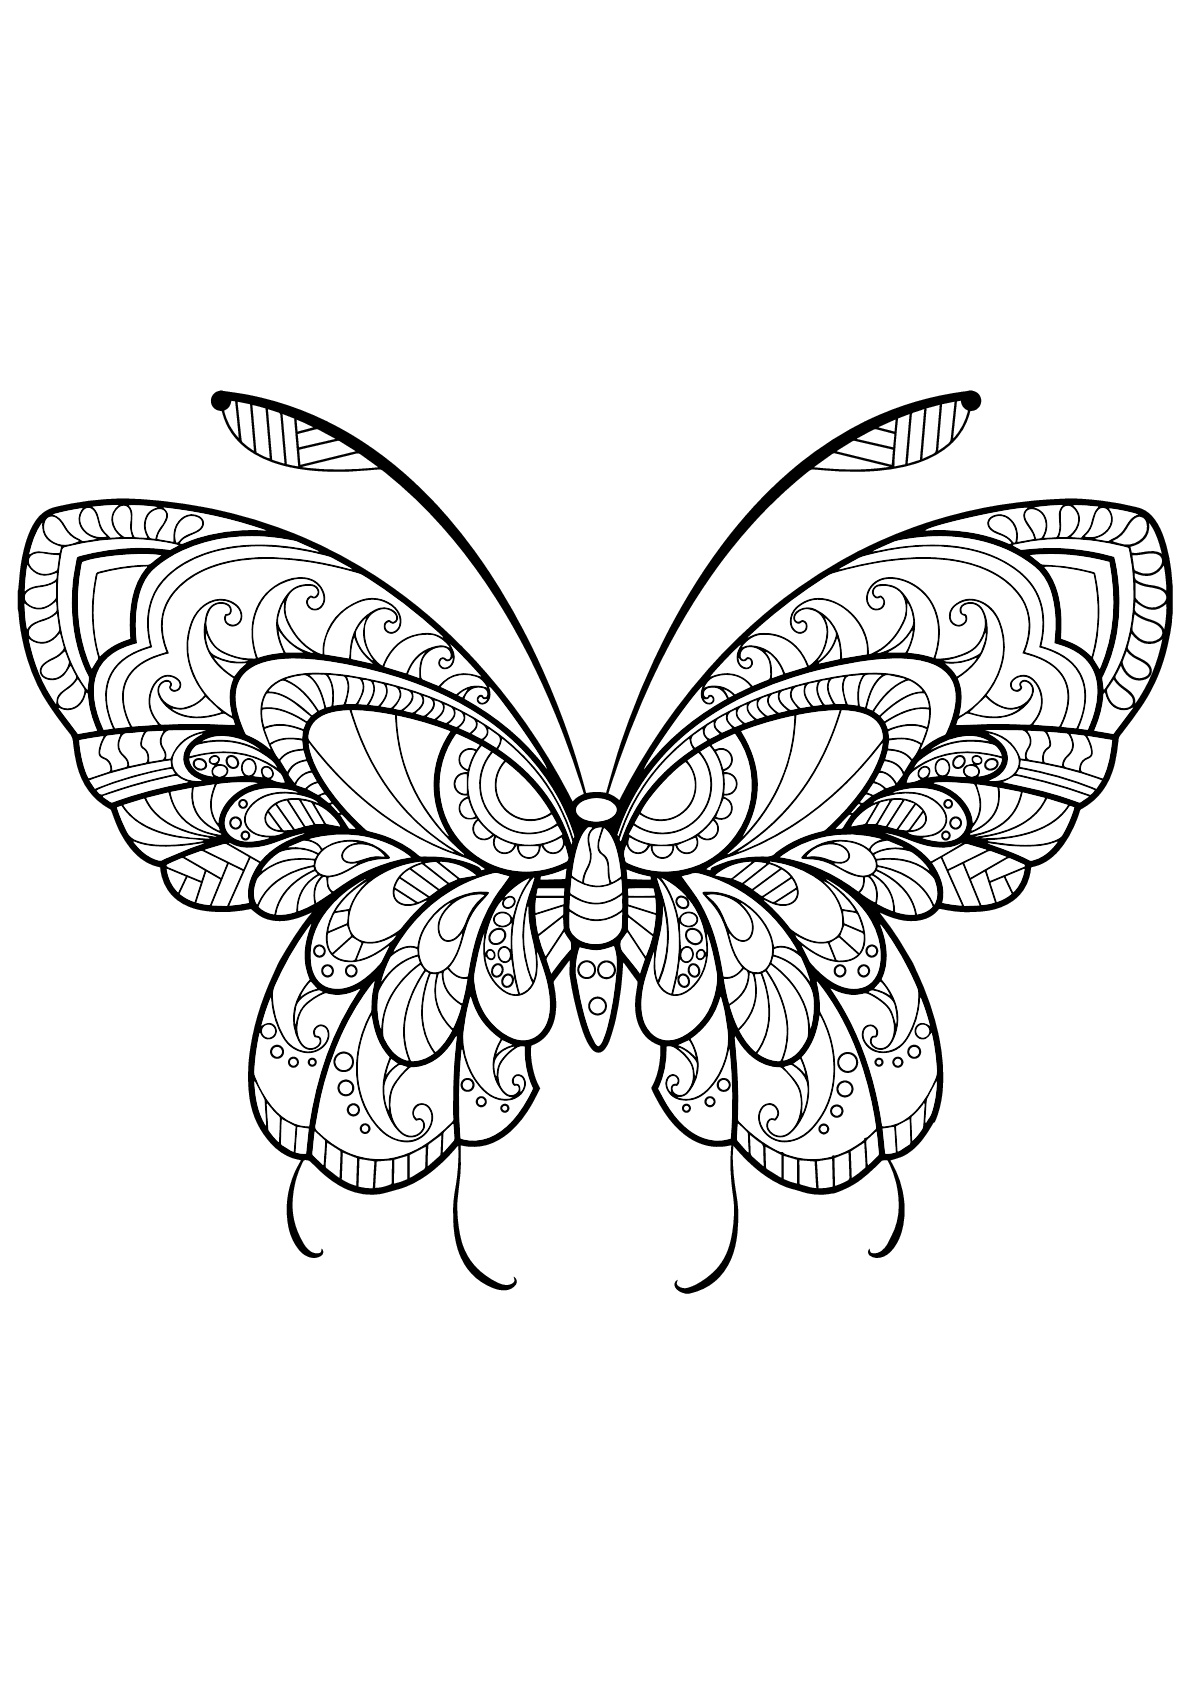 Butterfly with beautiful patterns - 11